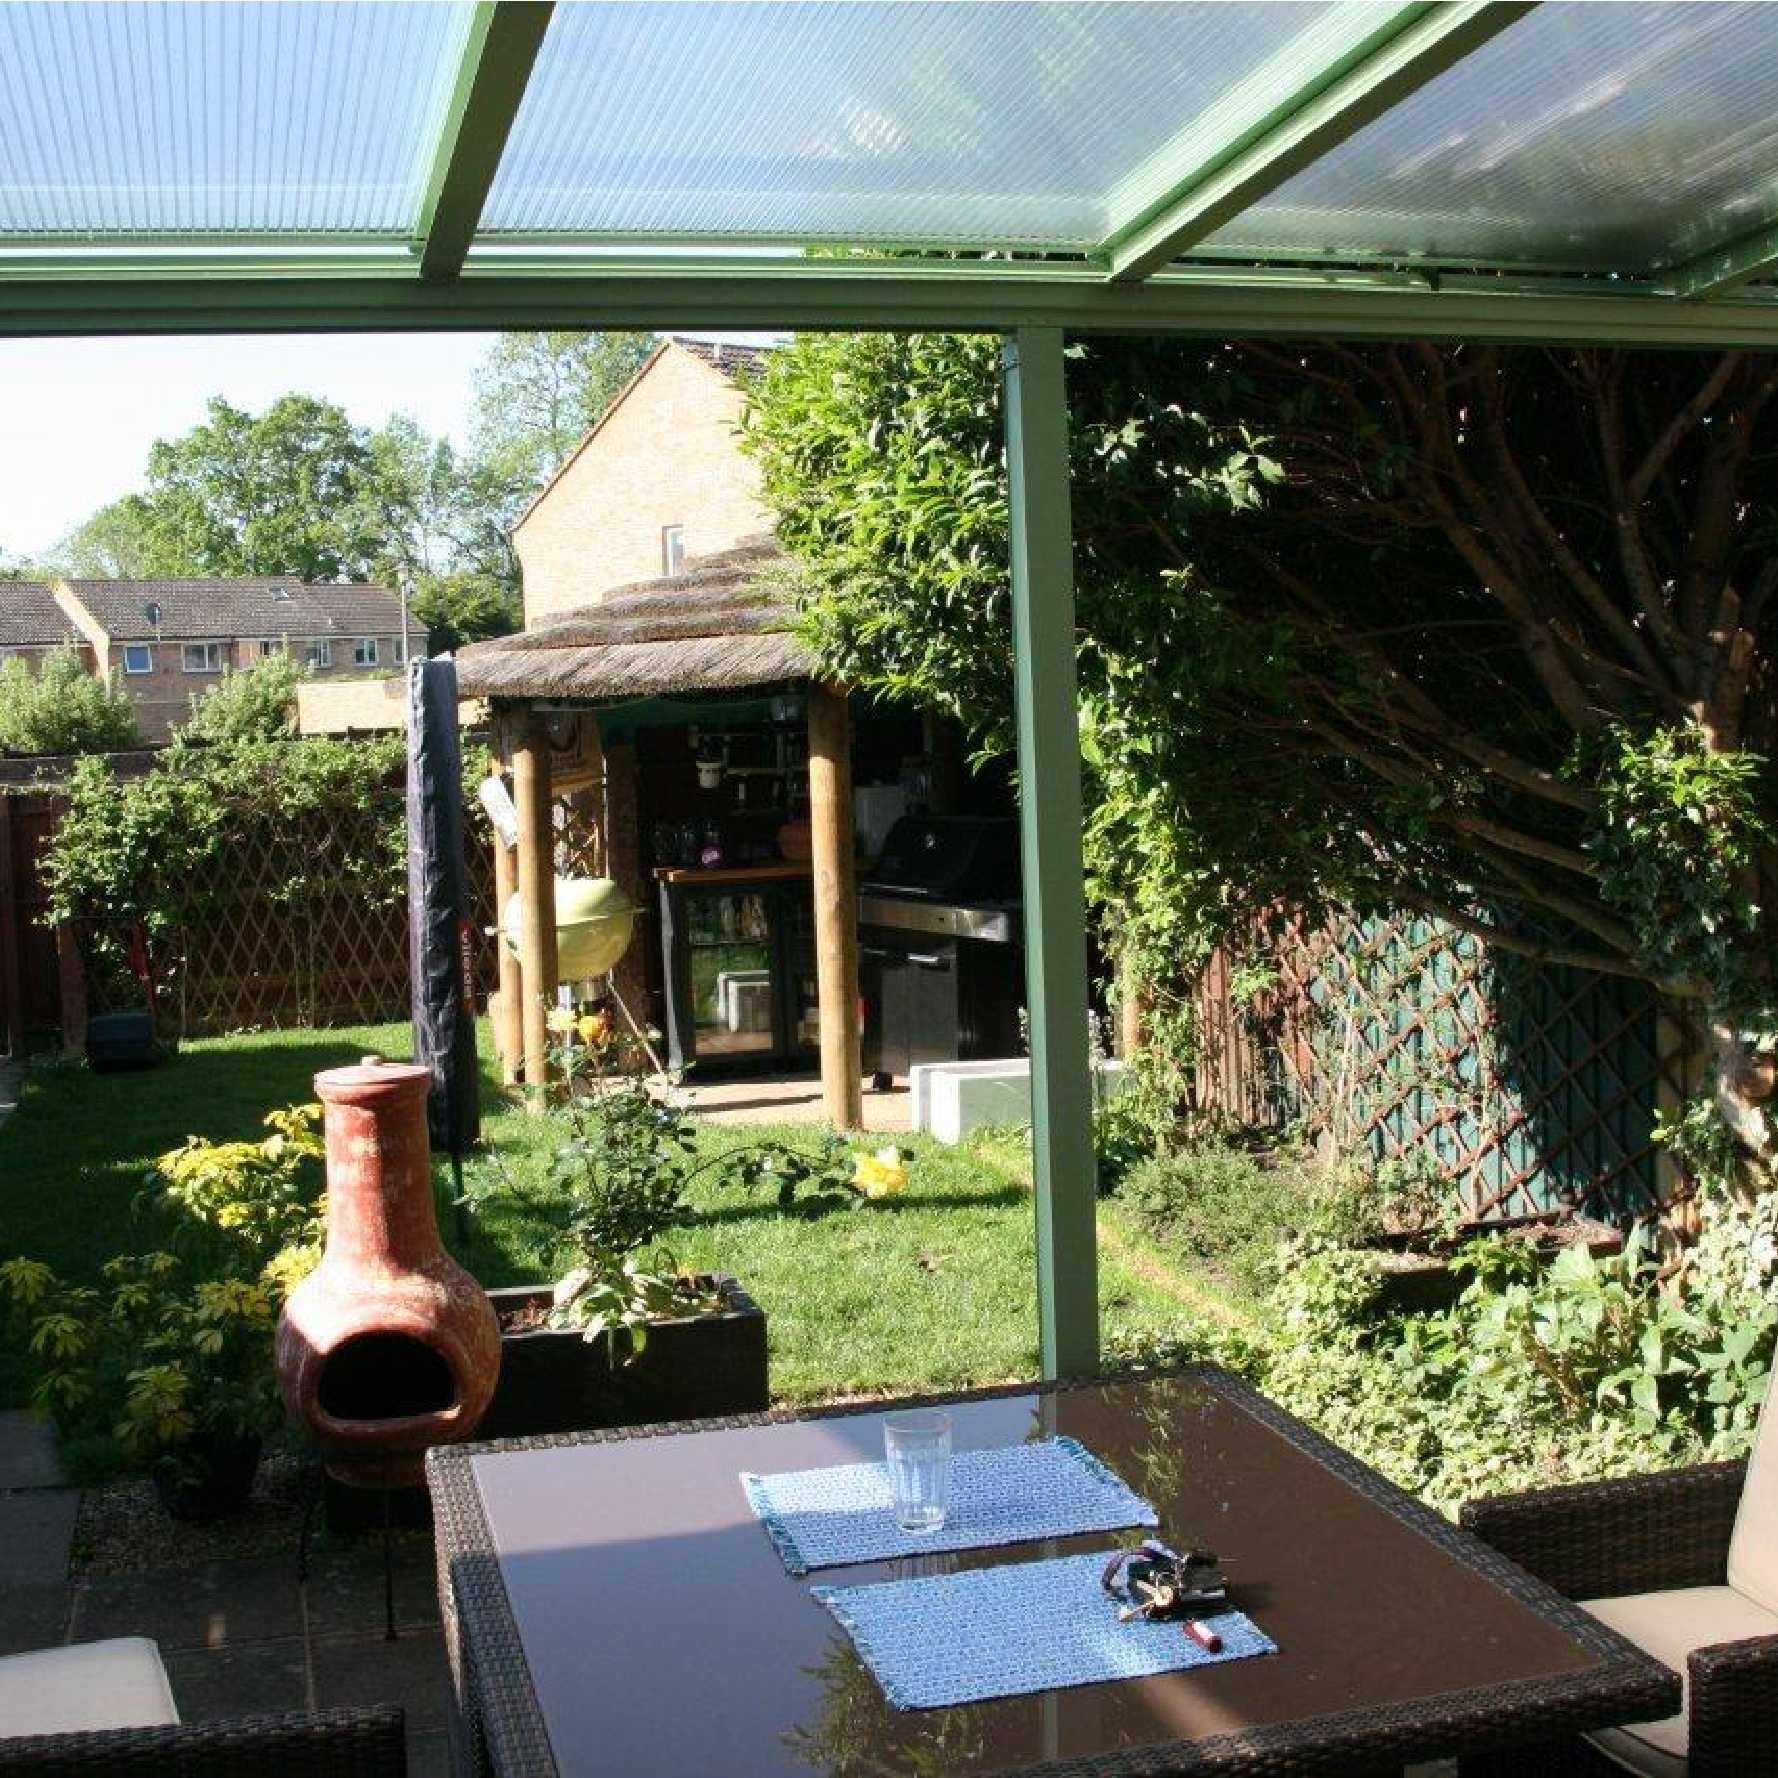 Affordable Omega Smart White Lean-To Canopy with 16mm Polycarbonate Glazing - 7.0m (W) x 4.0m (P), (4) Supporting Posts